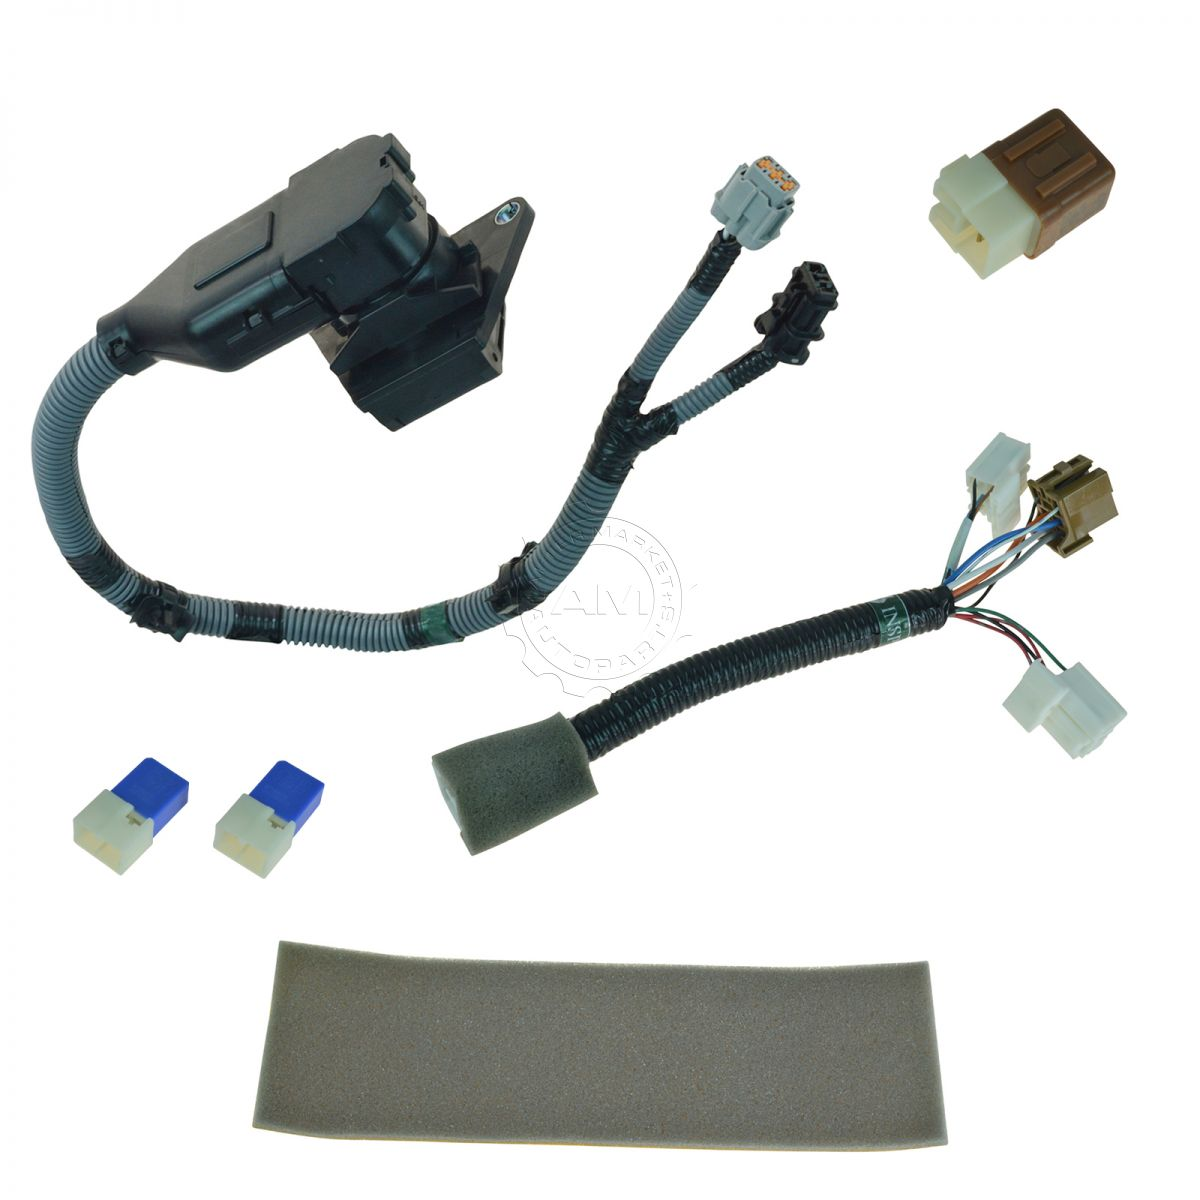 oem 999t8br020 complete 7 pin plug & play tow harness kit for nissan jeep jk 7 pin trailer wiring harness kit oem 999t8br020 complete 7 pin plug & play tow harness kit for nissan frontier